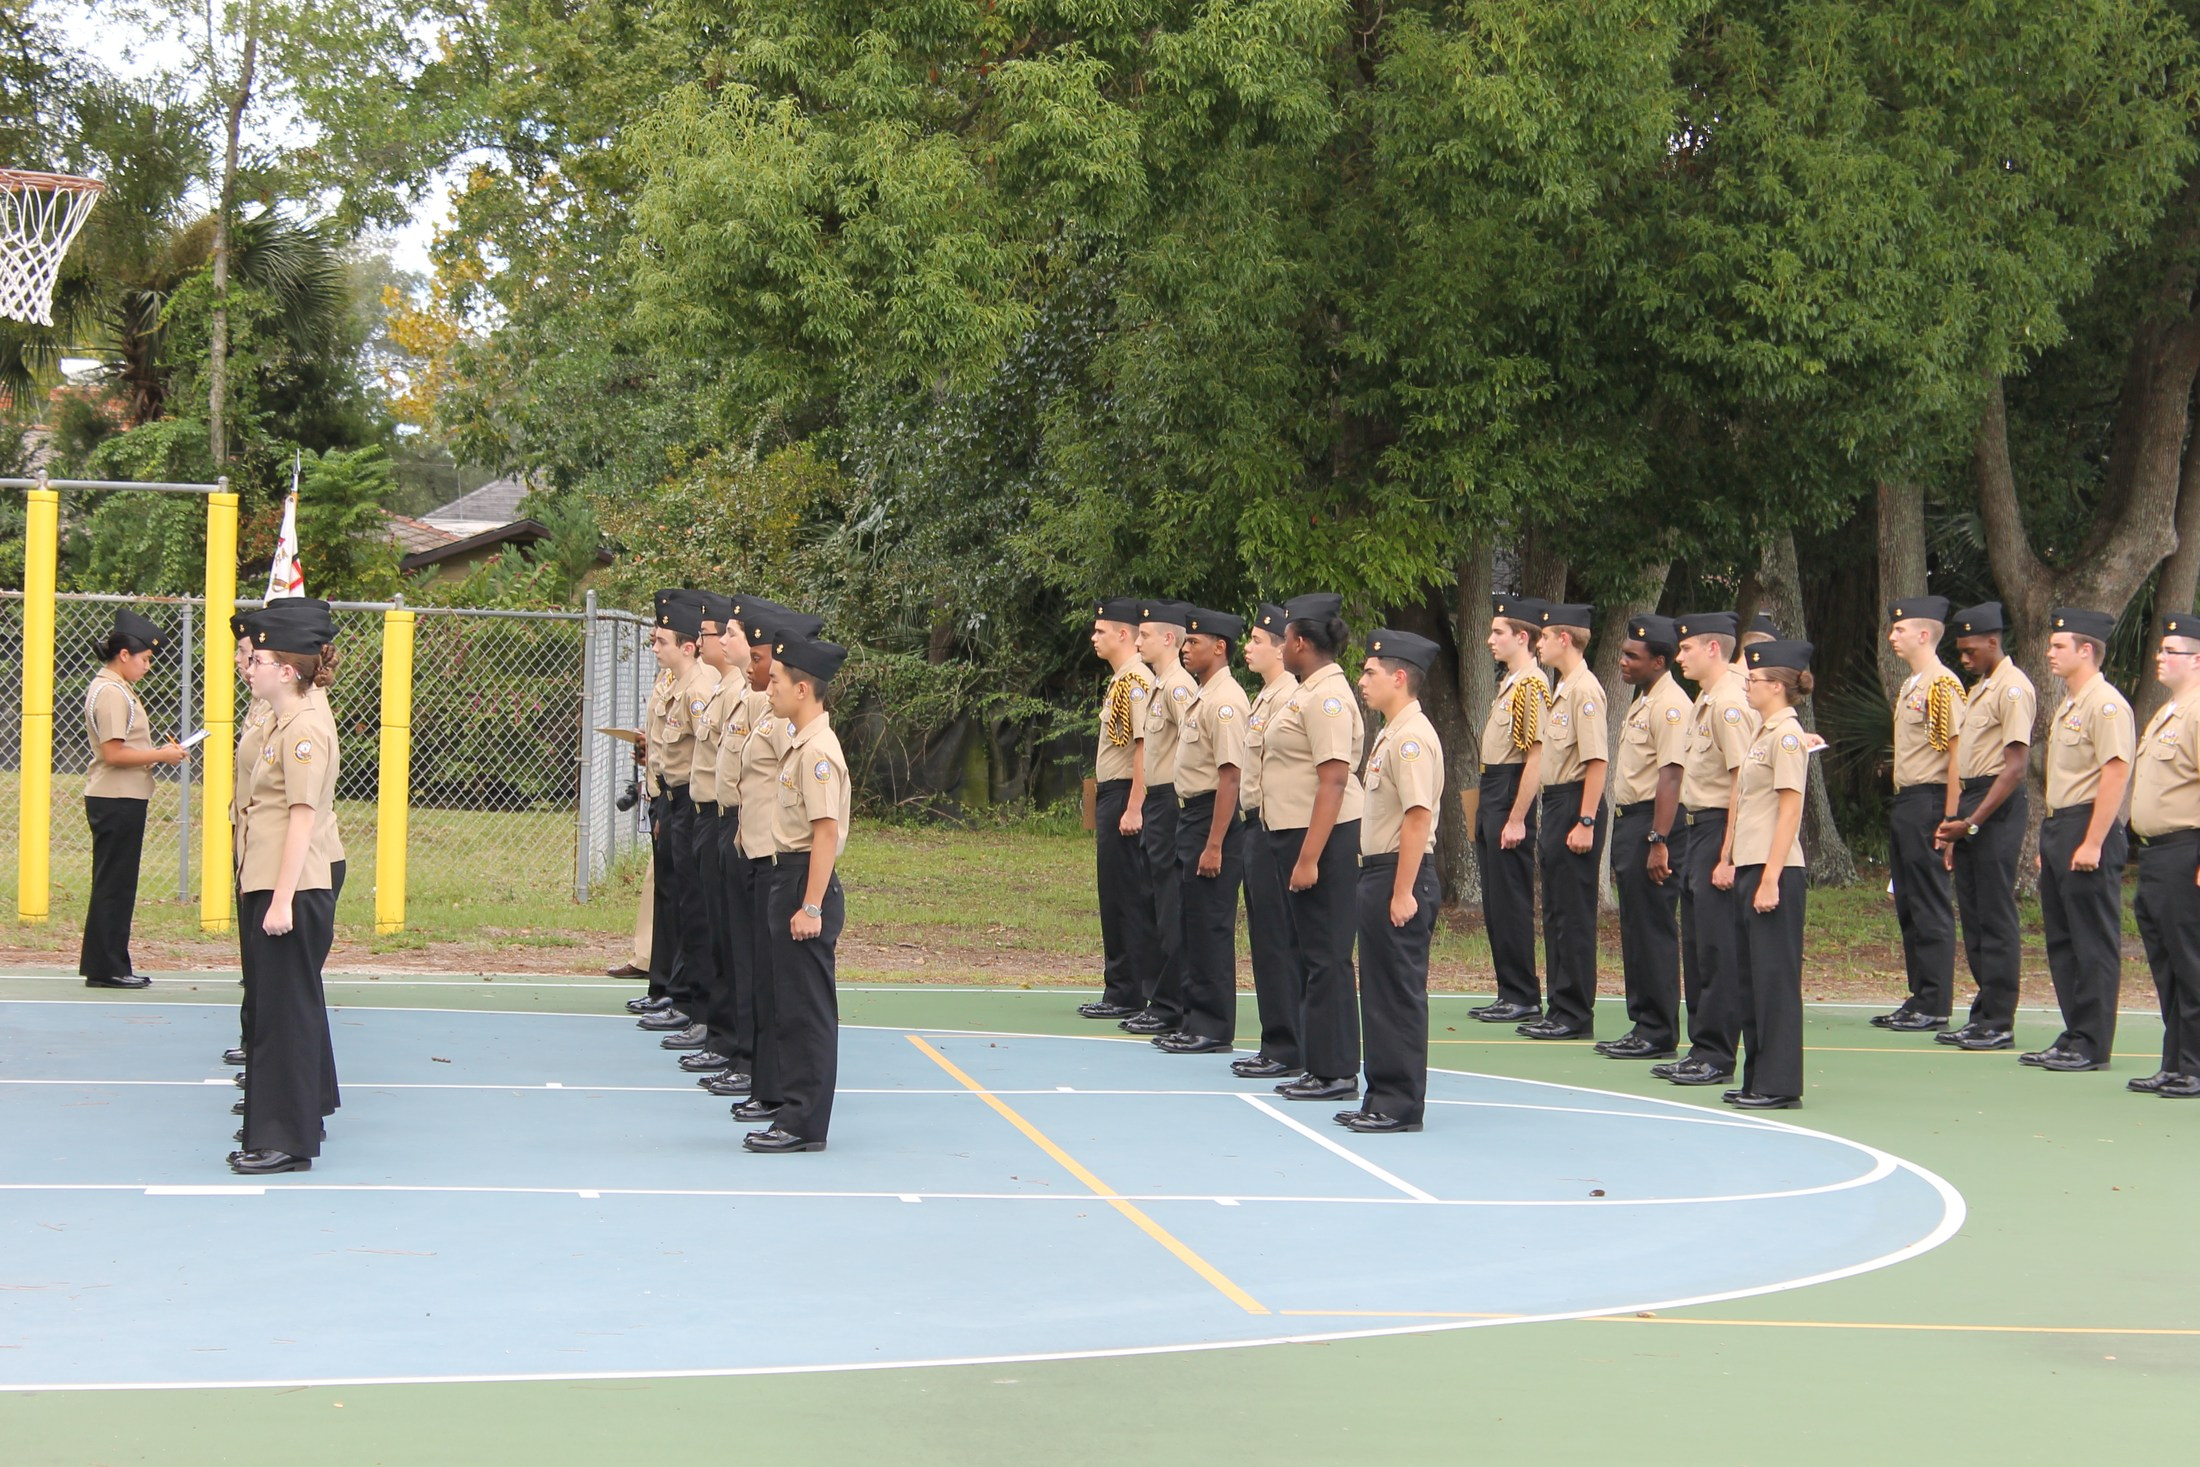 ROTC in line formation